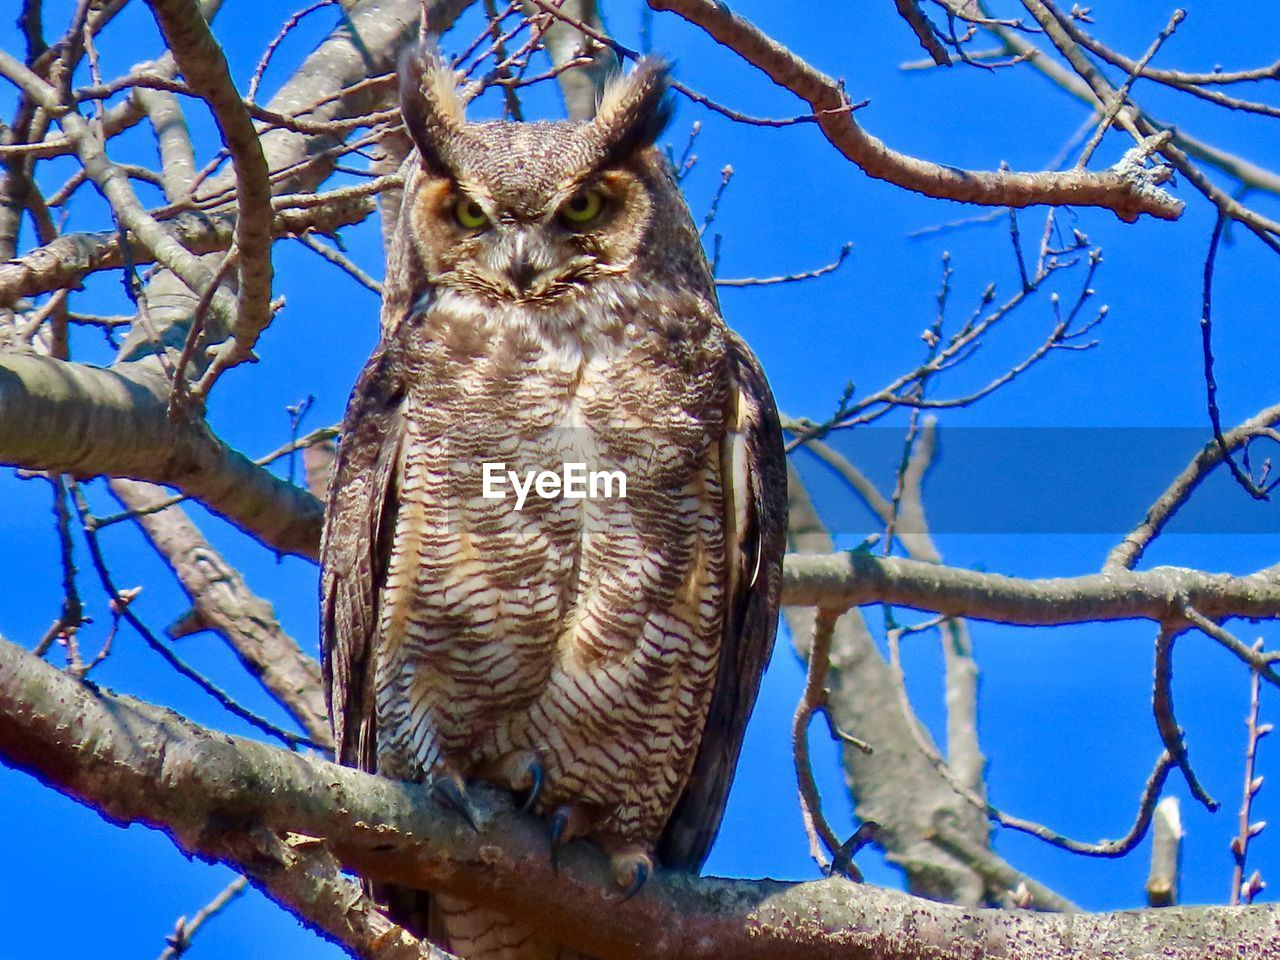 branch, tree, animal themes, animal, low angle view, vertebrate, animal wildlife, bird, one animal, animals in the wild, plant, perching, sky, nature, bird of prey, day, no people, bare tree, clear sky, blue, outdoors, eagle